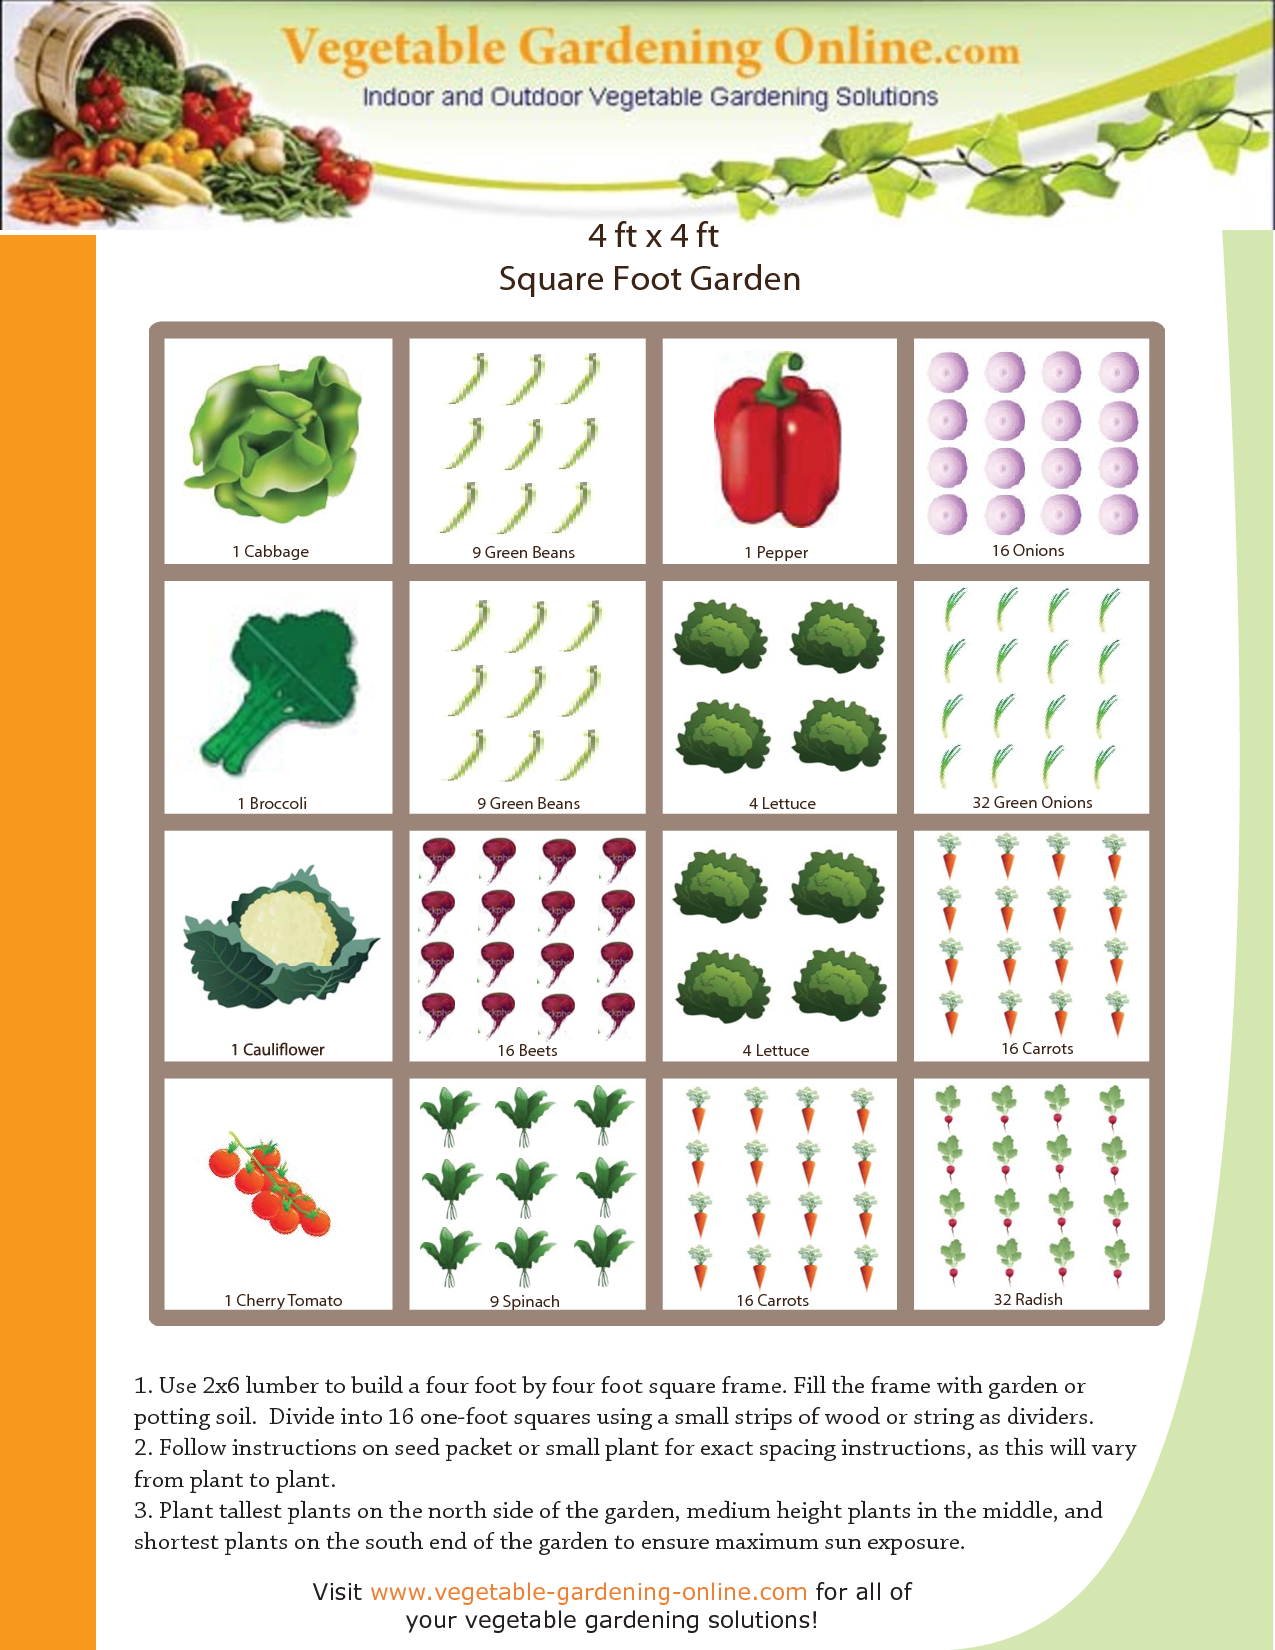 2868821a26e79f180e1e85b9768f9f81 - Best Vegetables For Square Foot Gardening